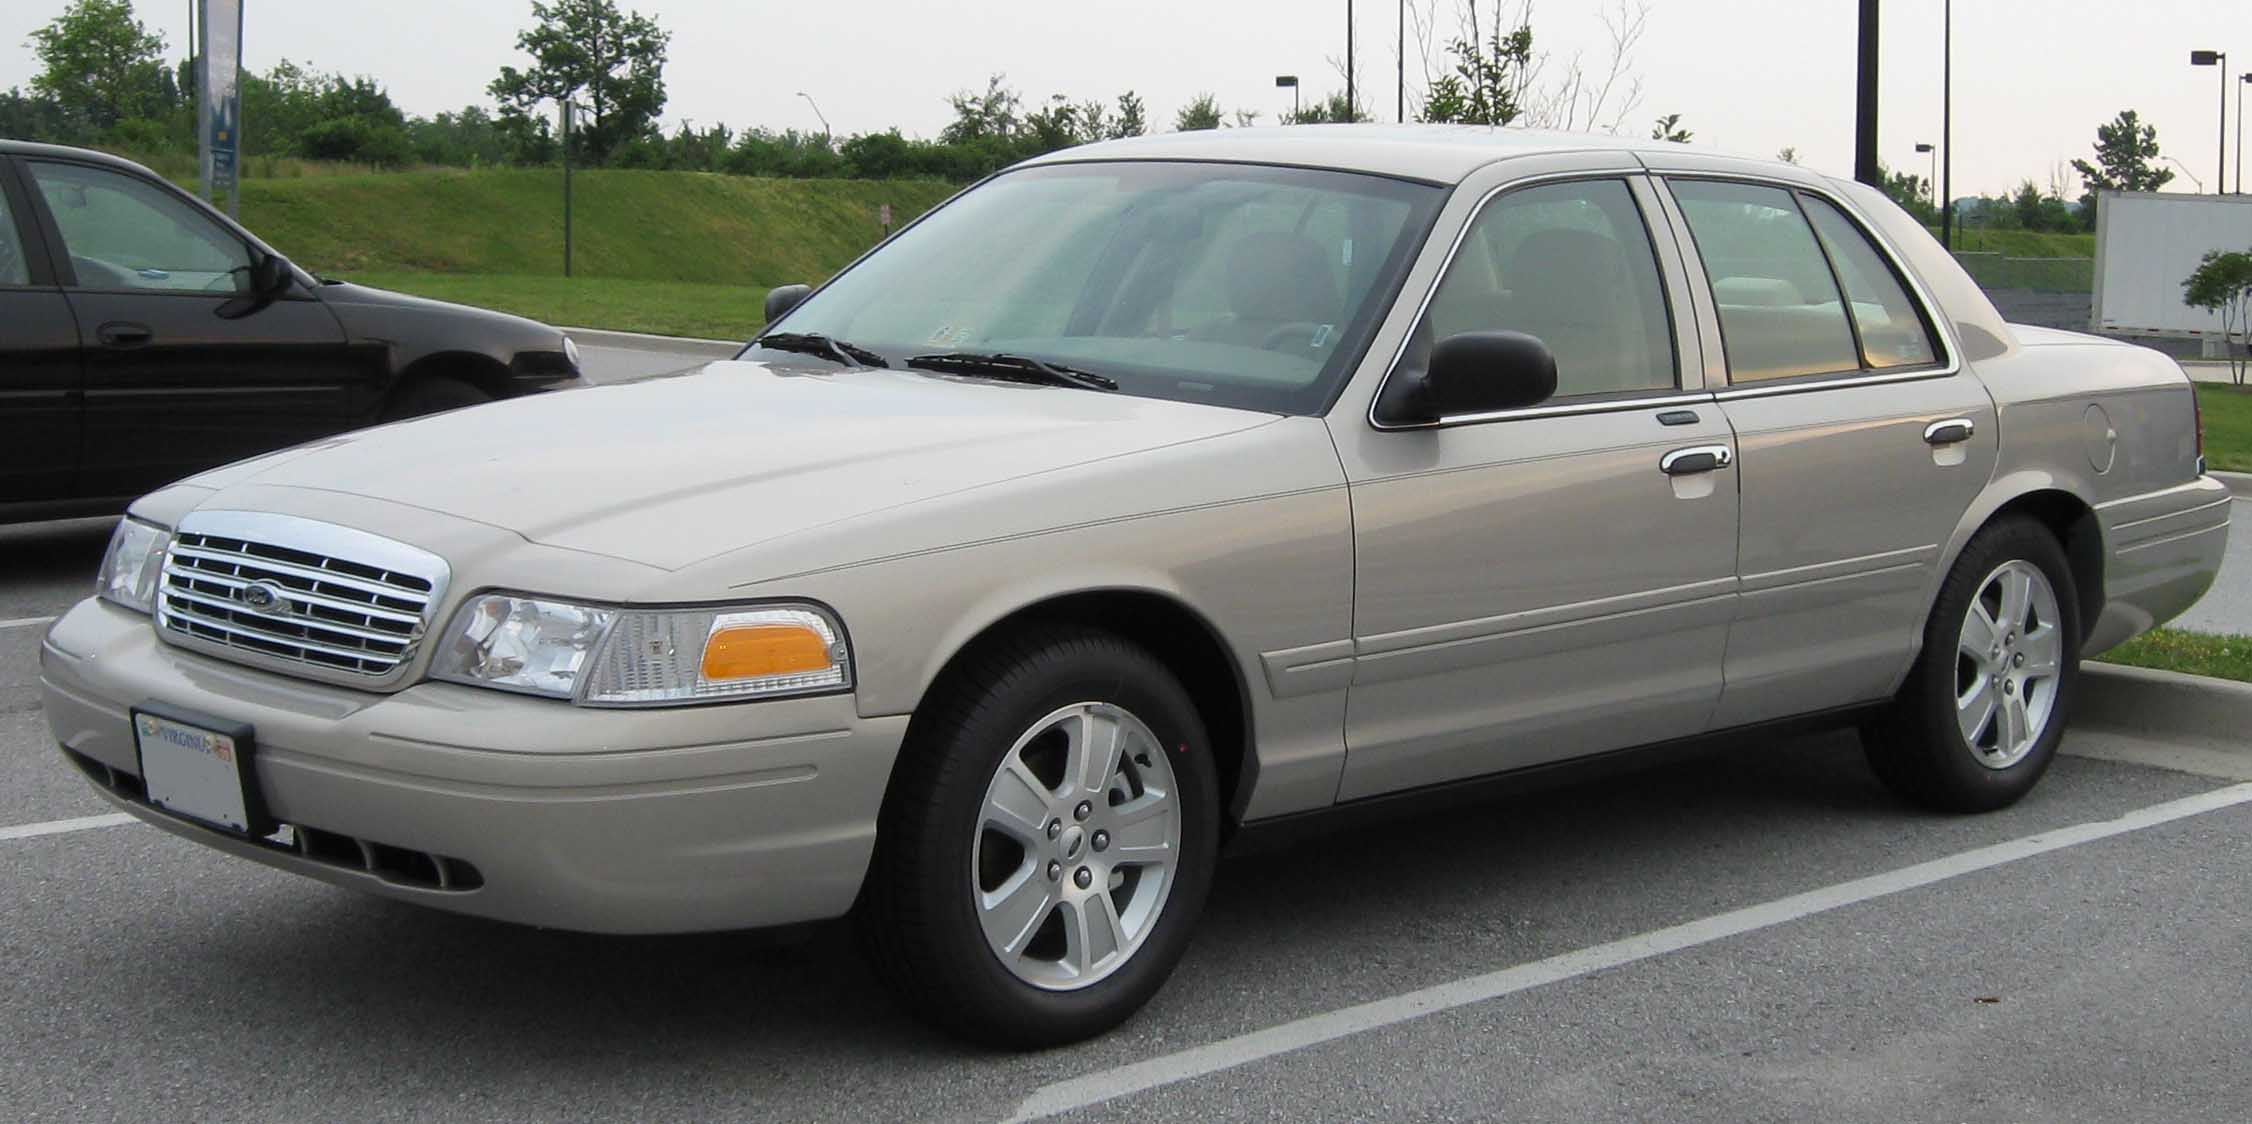 2011 Ford Crown Victoria #1